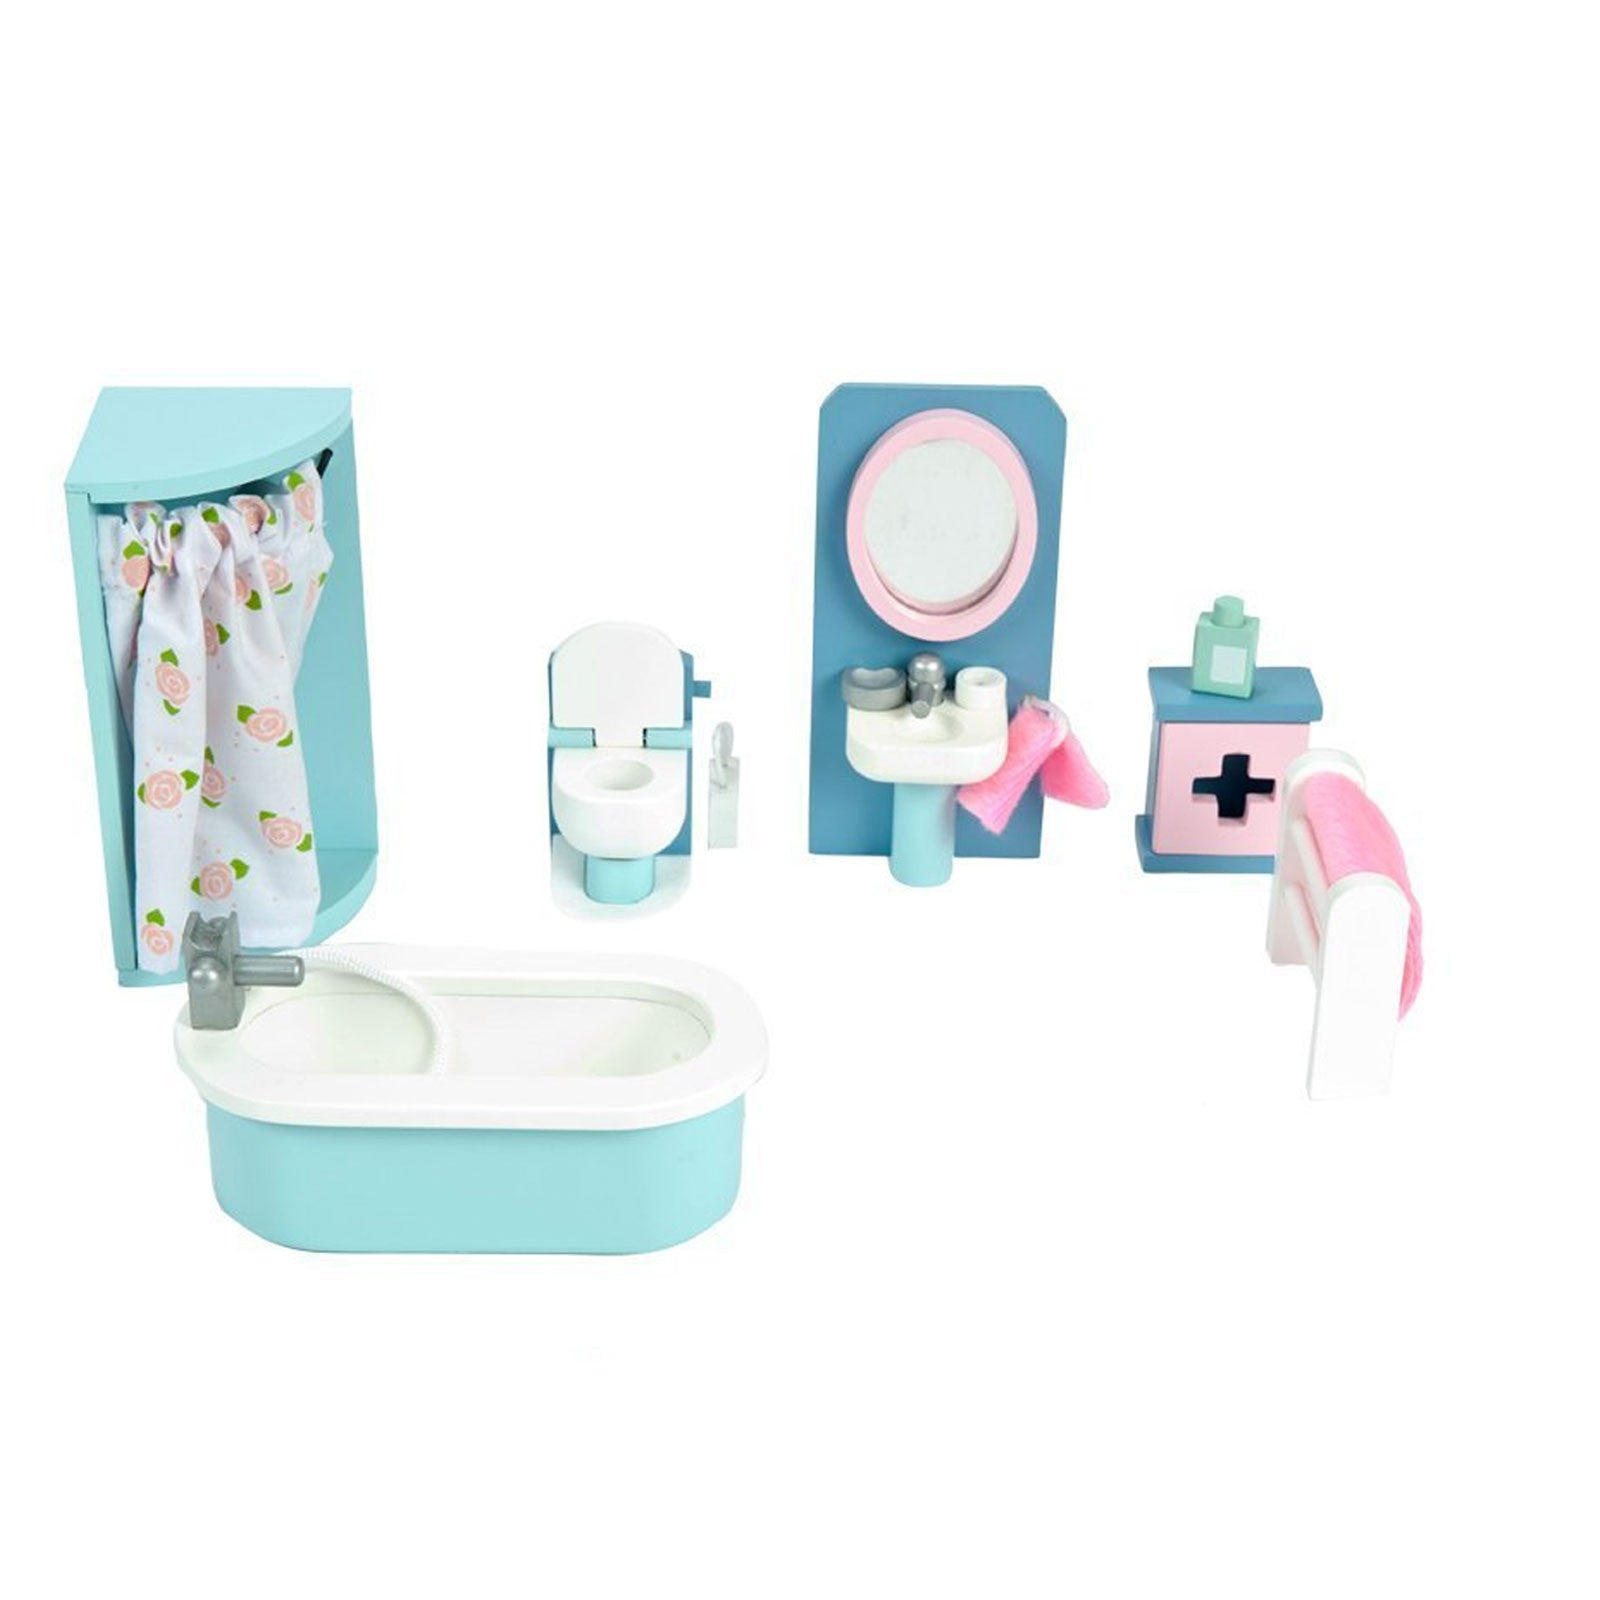 Le Toy Van Dolls House Furniture Le Toy Van Dollhouse Accessories Bathroom at Little Earth Nest Eco Shop